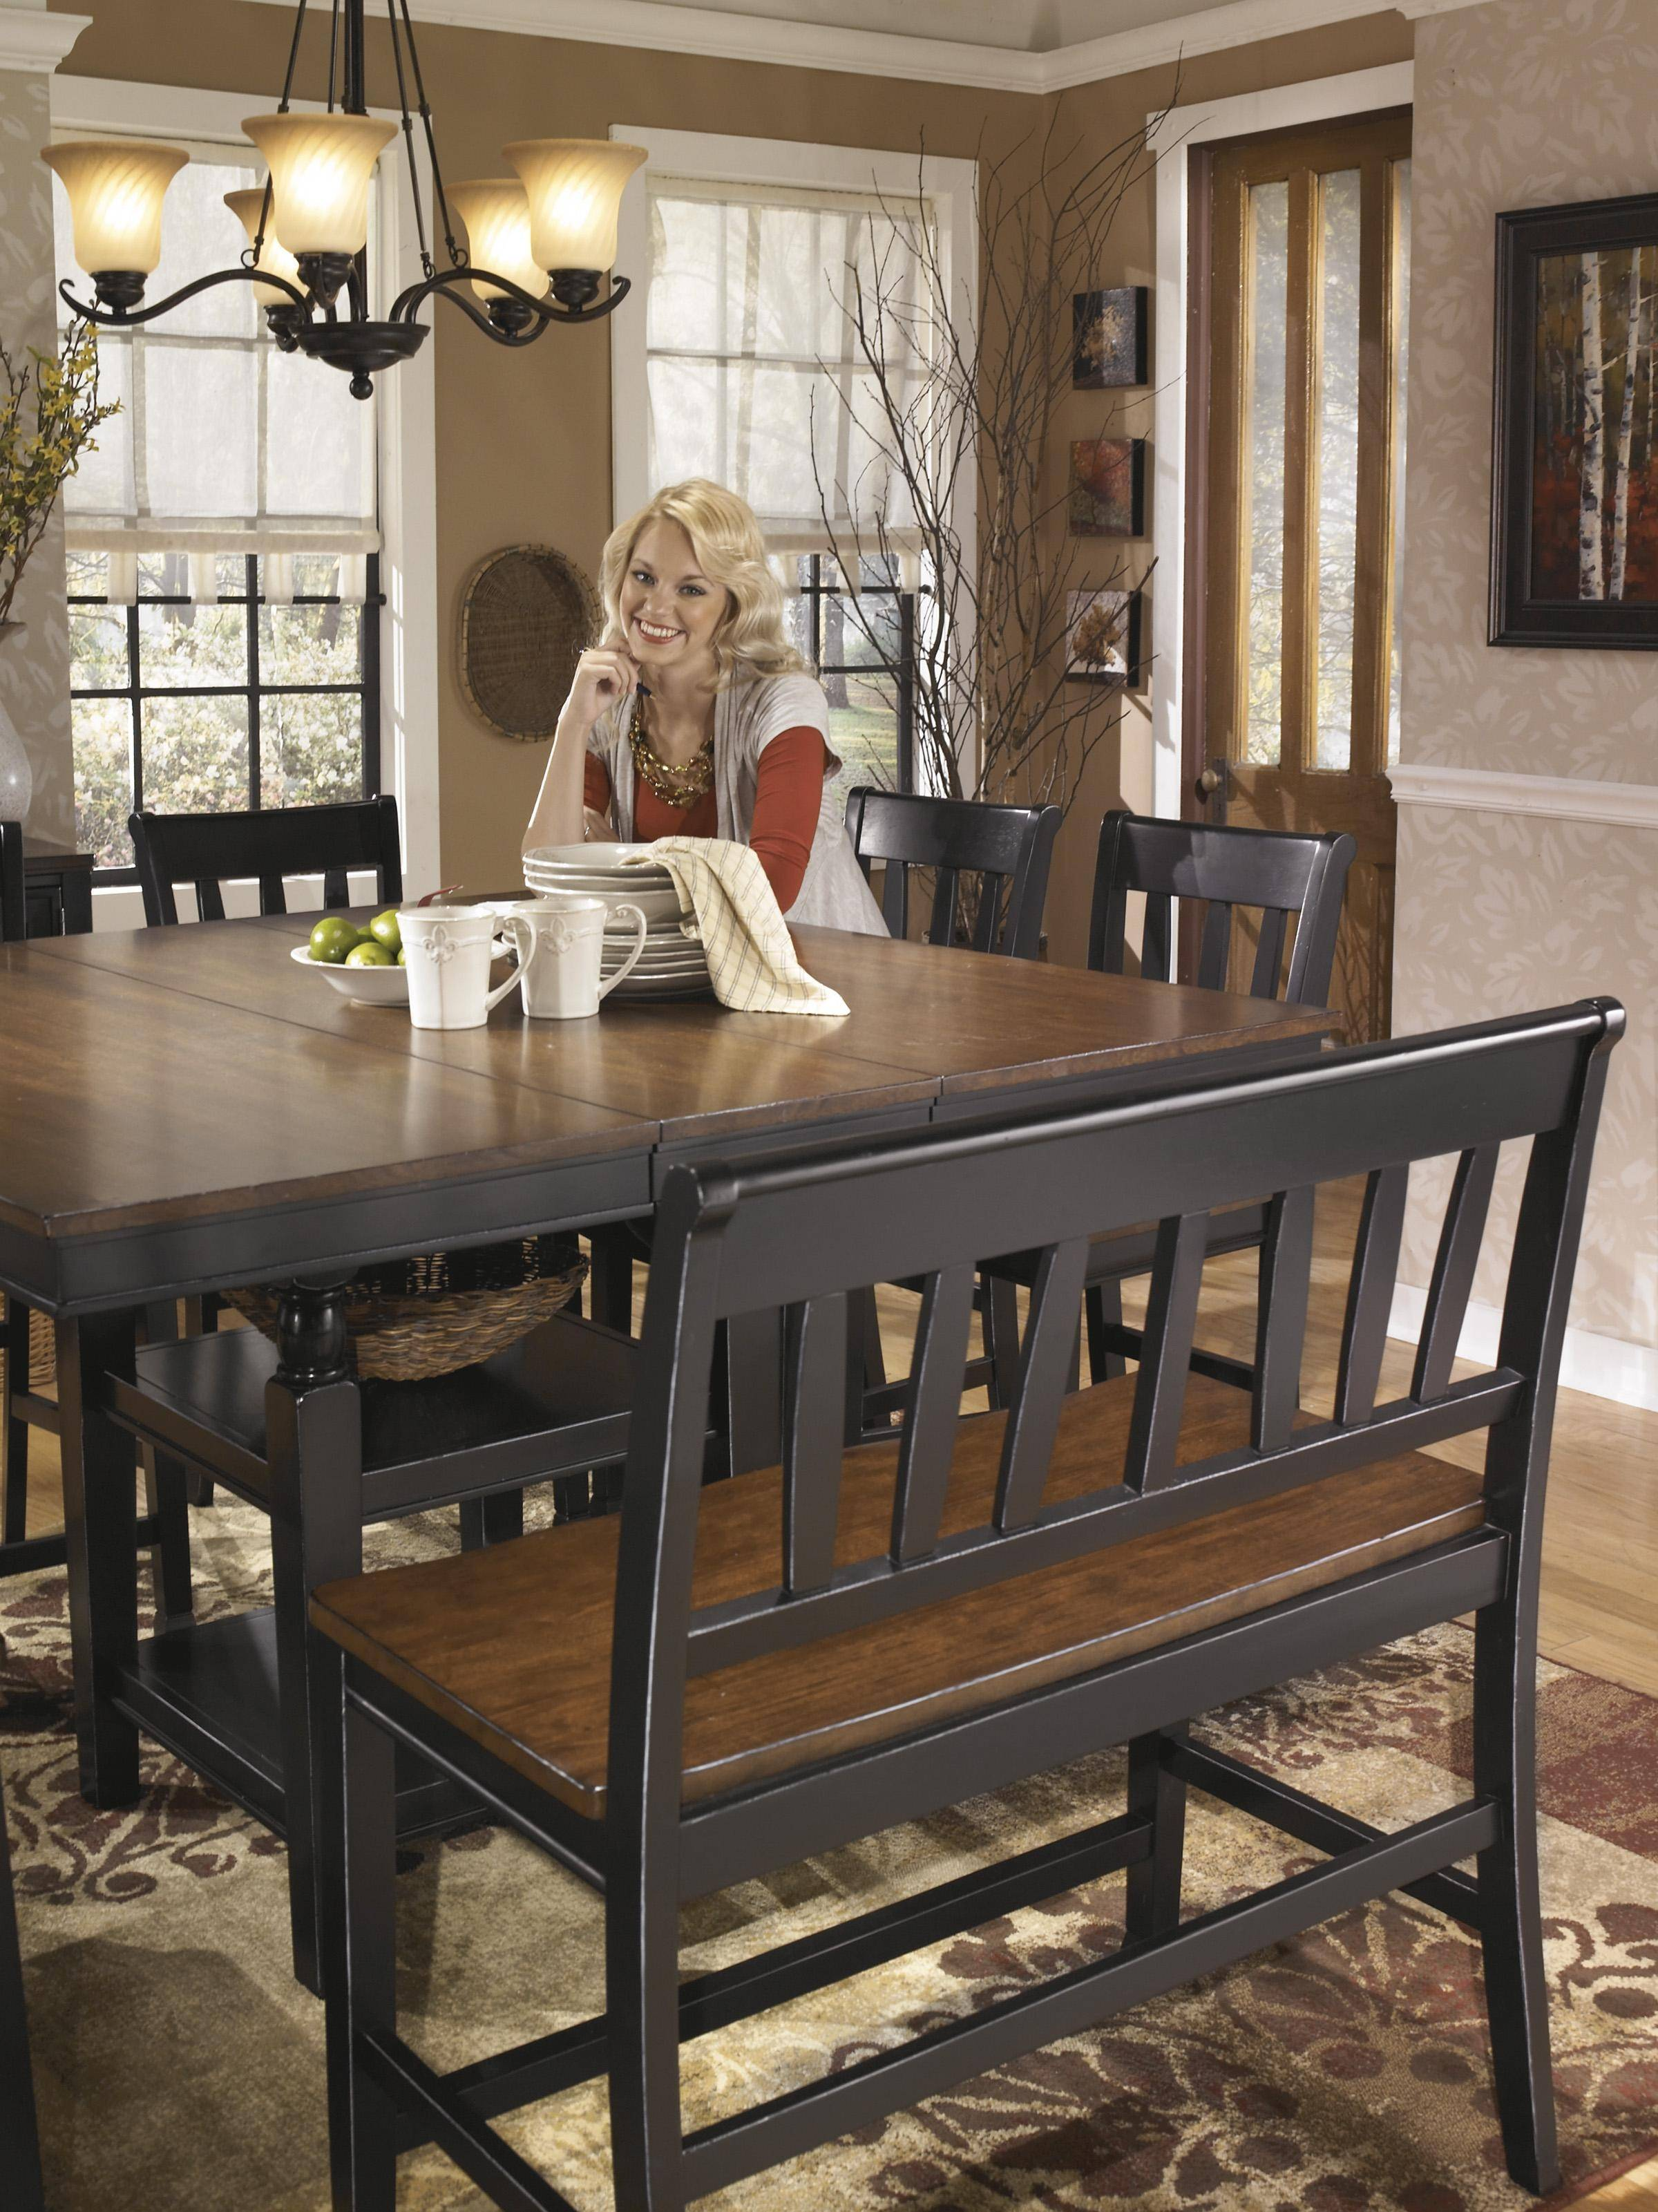 Ashley Owingsville D580 Dining Room Set 8pcs In Black Brown Square Table D580 32 224 6 323